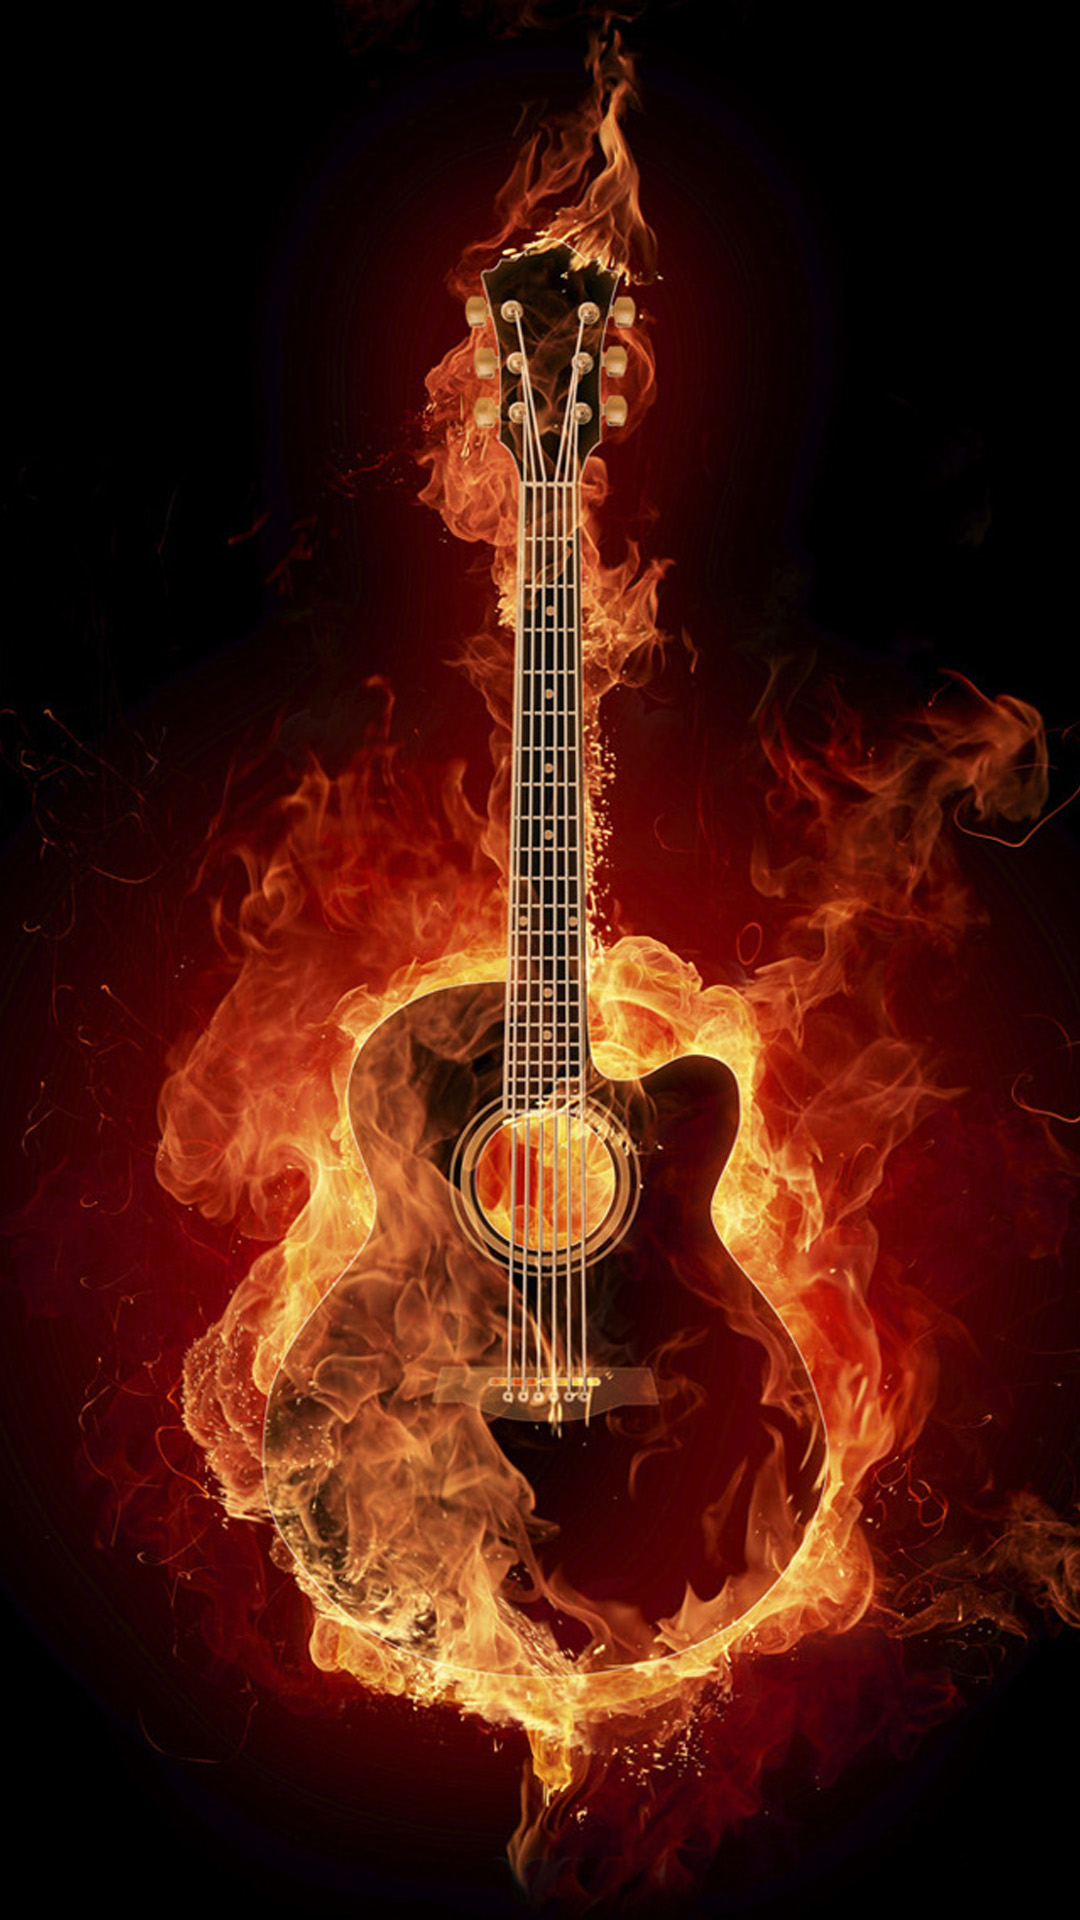 Flame Guitar Wallpaper